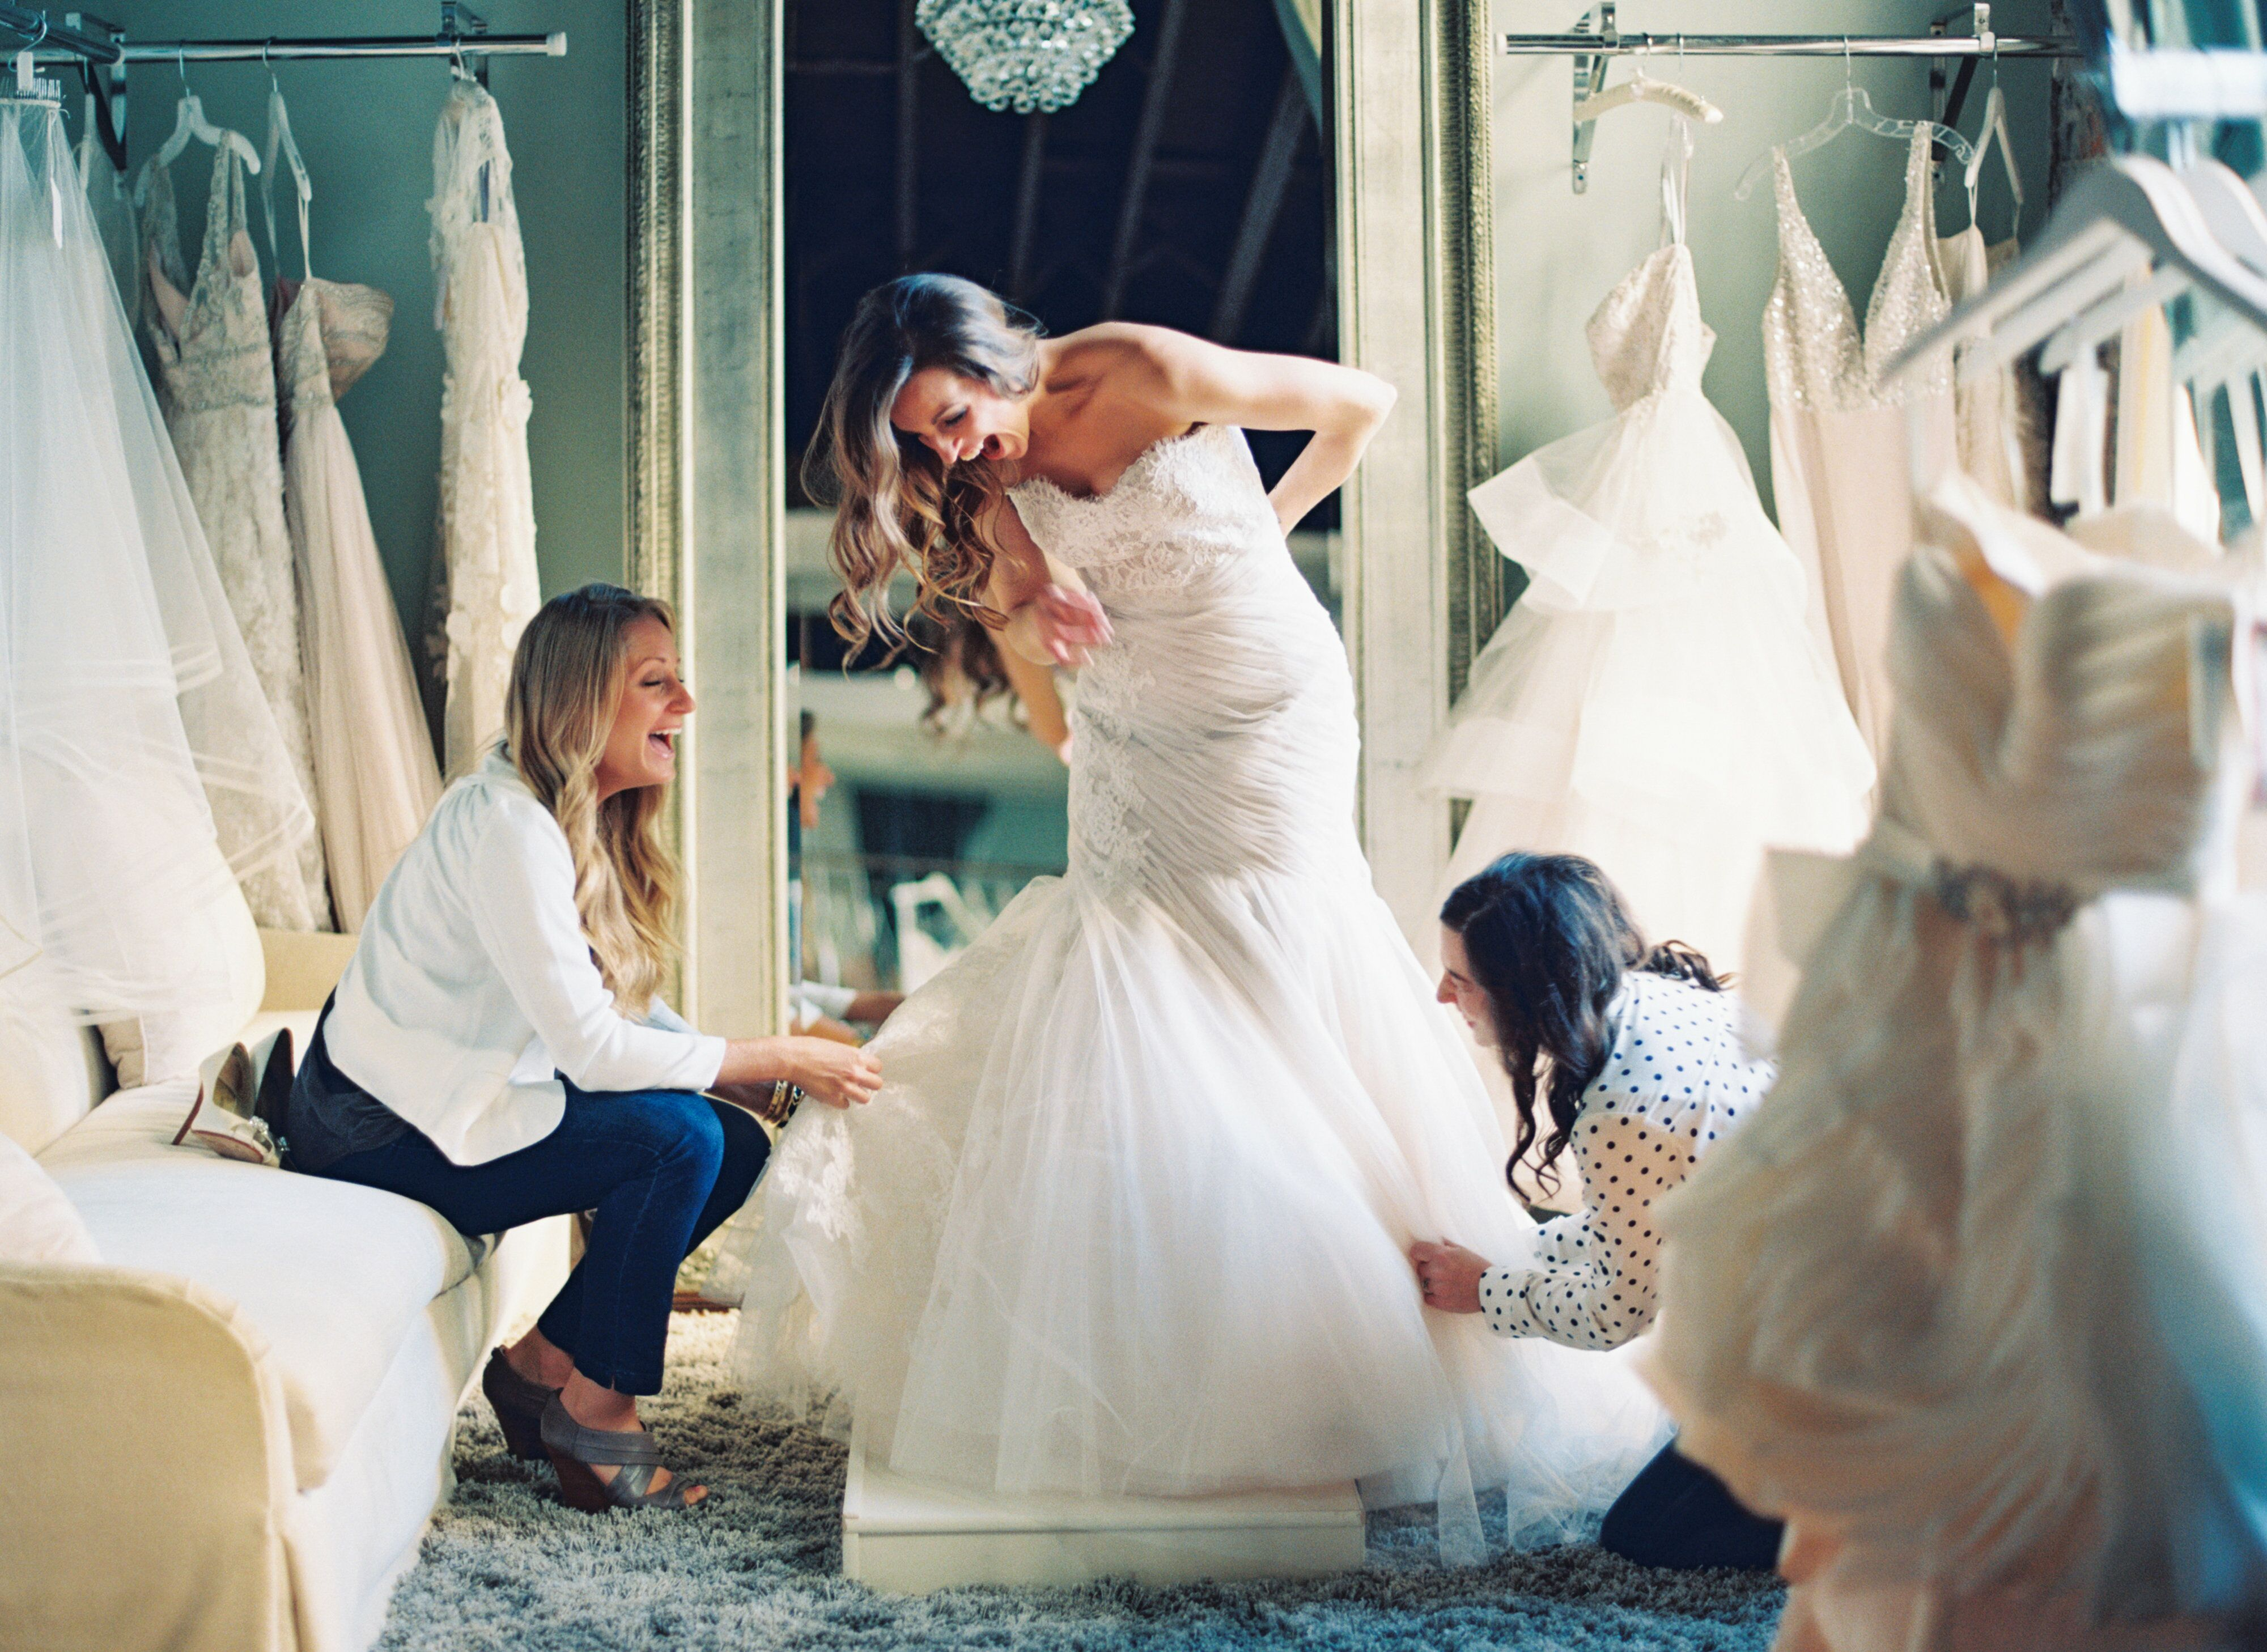 Bridal Salons in Charlotte, NC - The Knot